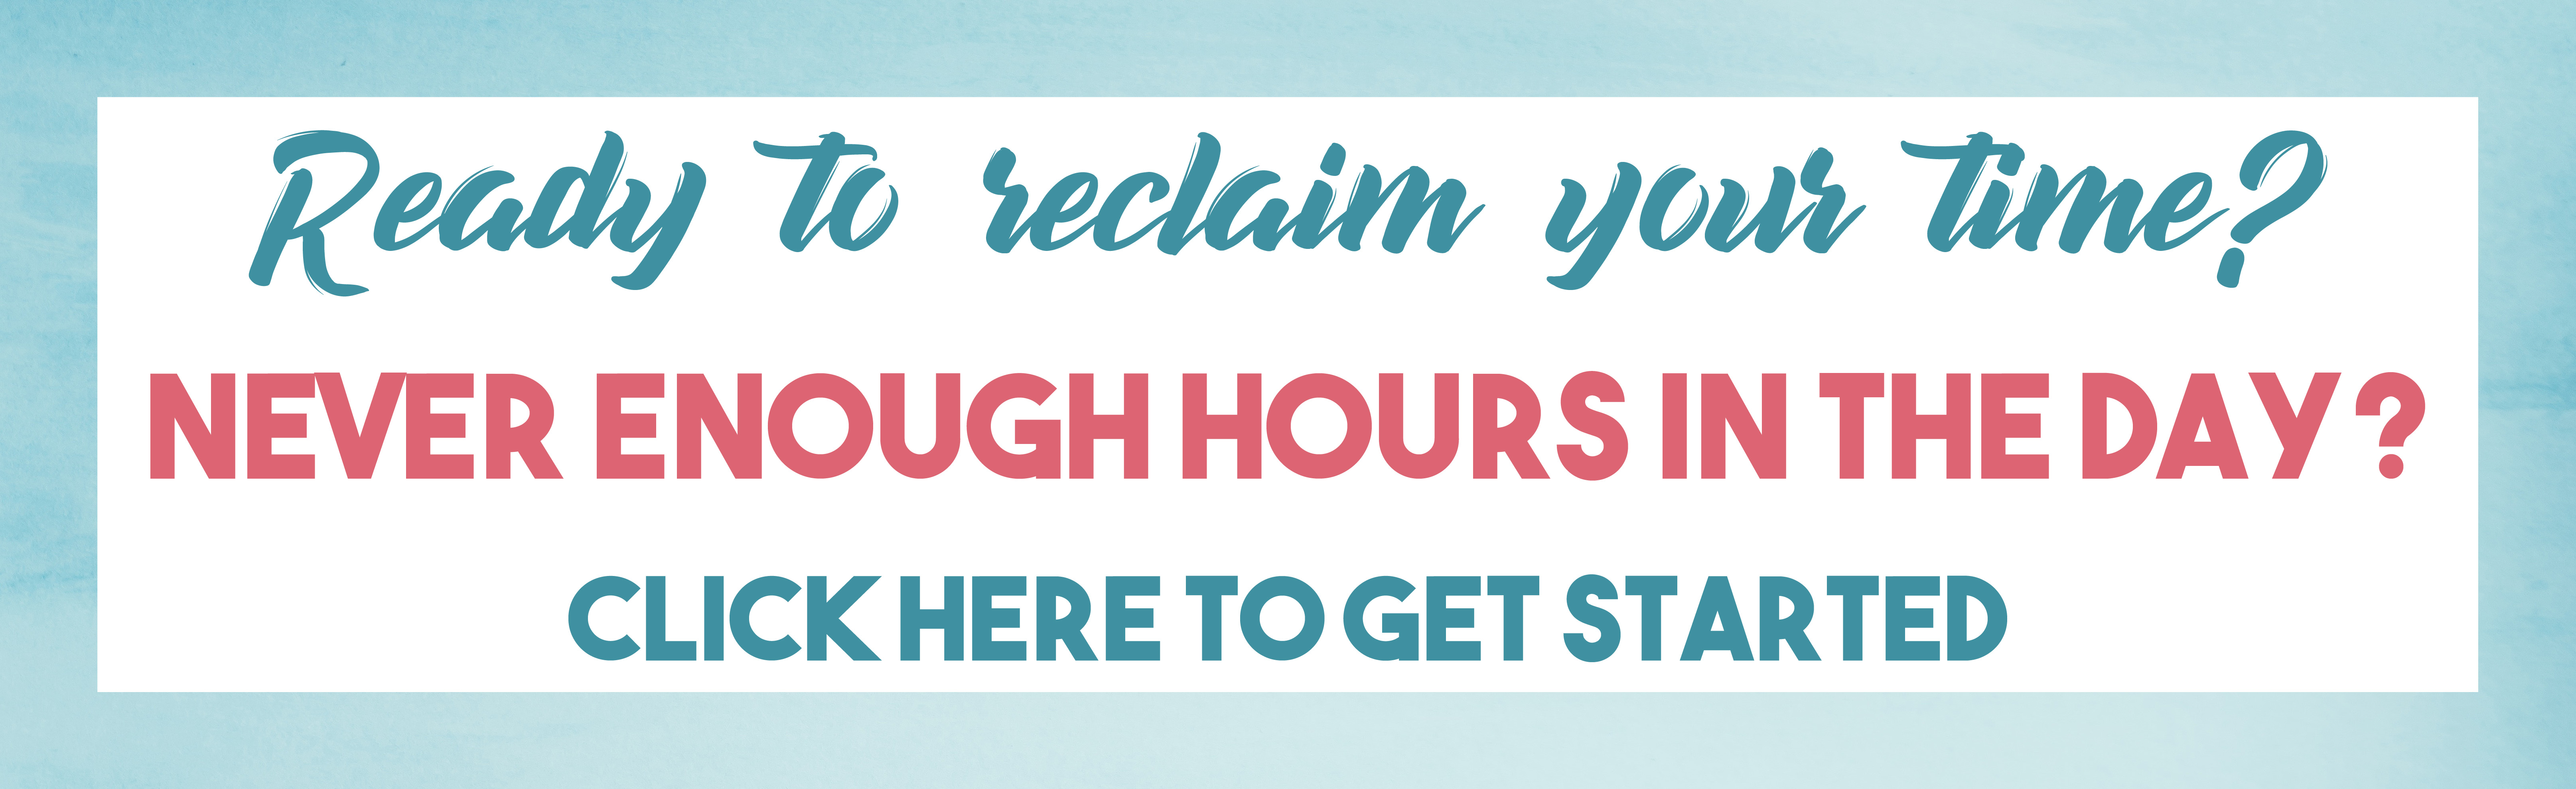 Never enough hours in the day? Click here to work with me